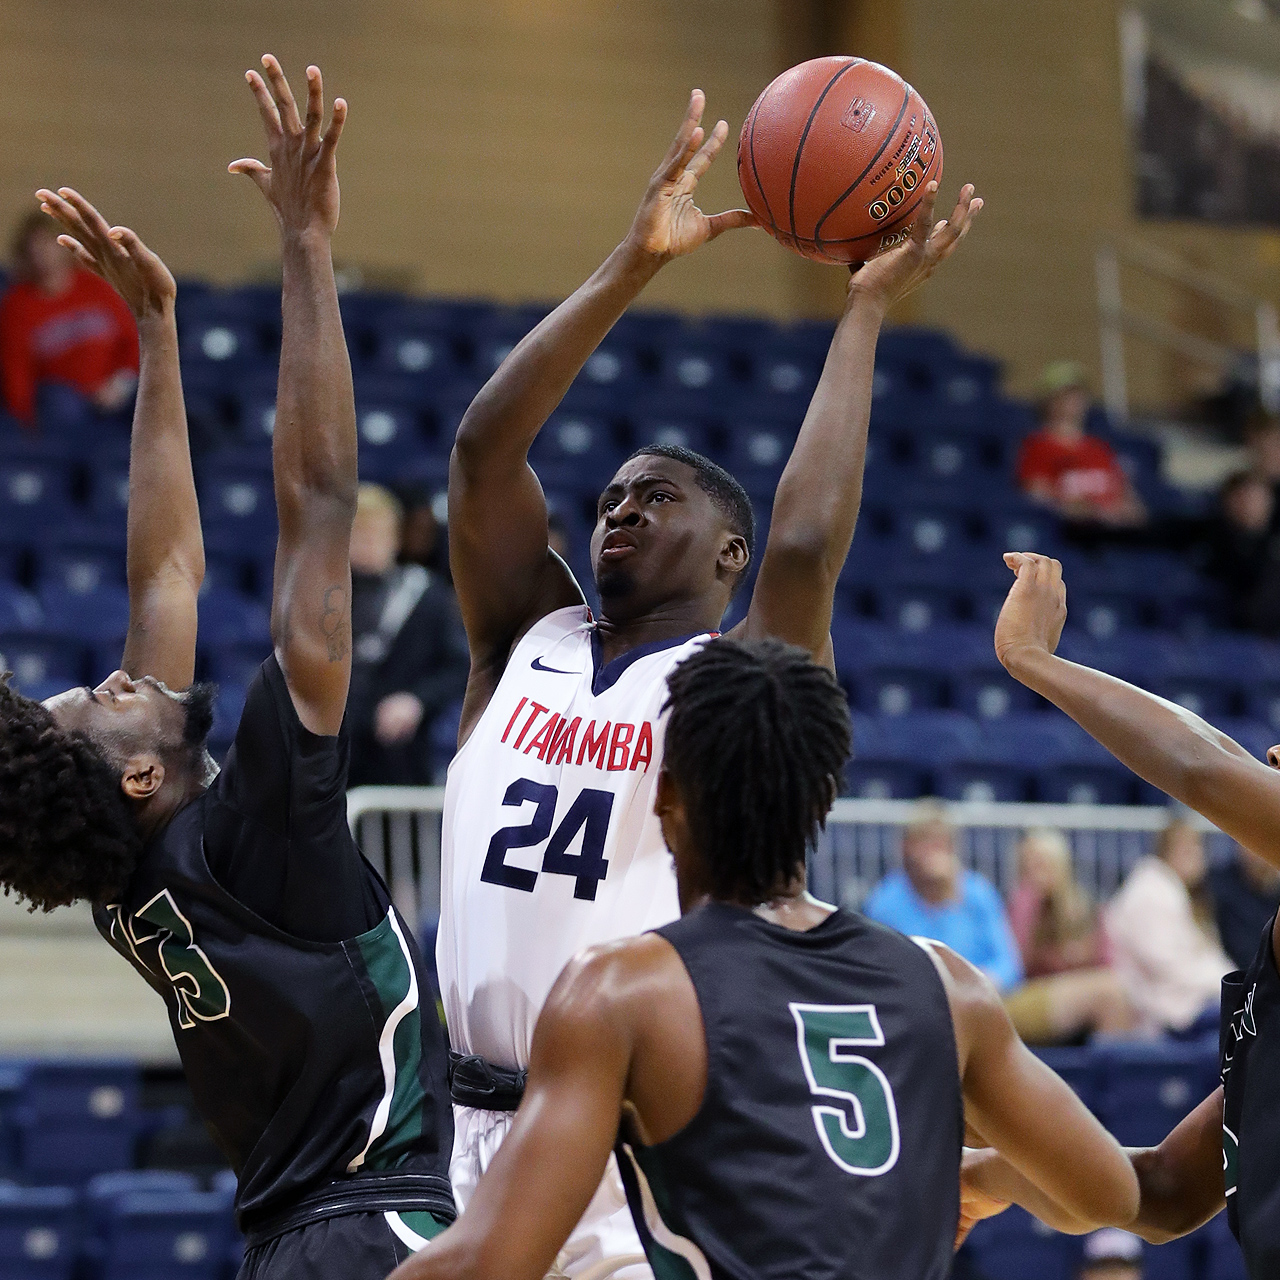 Indians drop heart-breaker with East Mississippi, 68-64